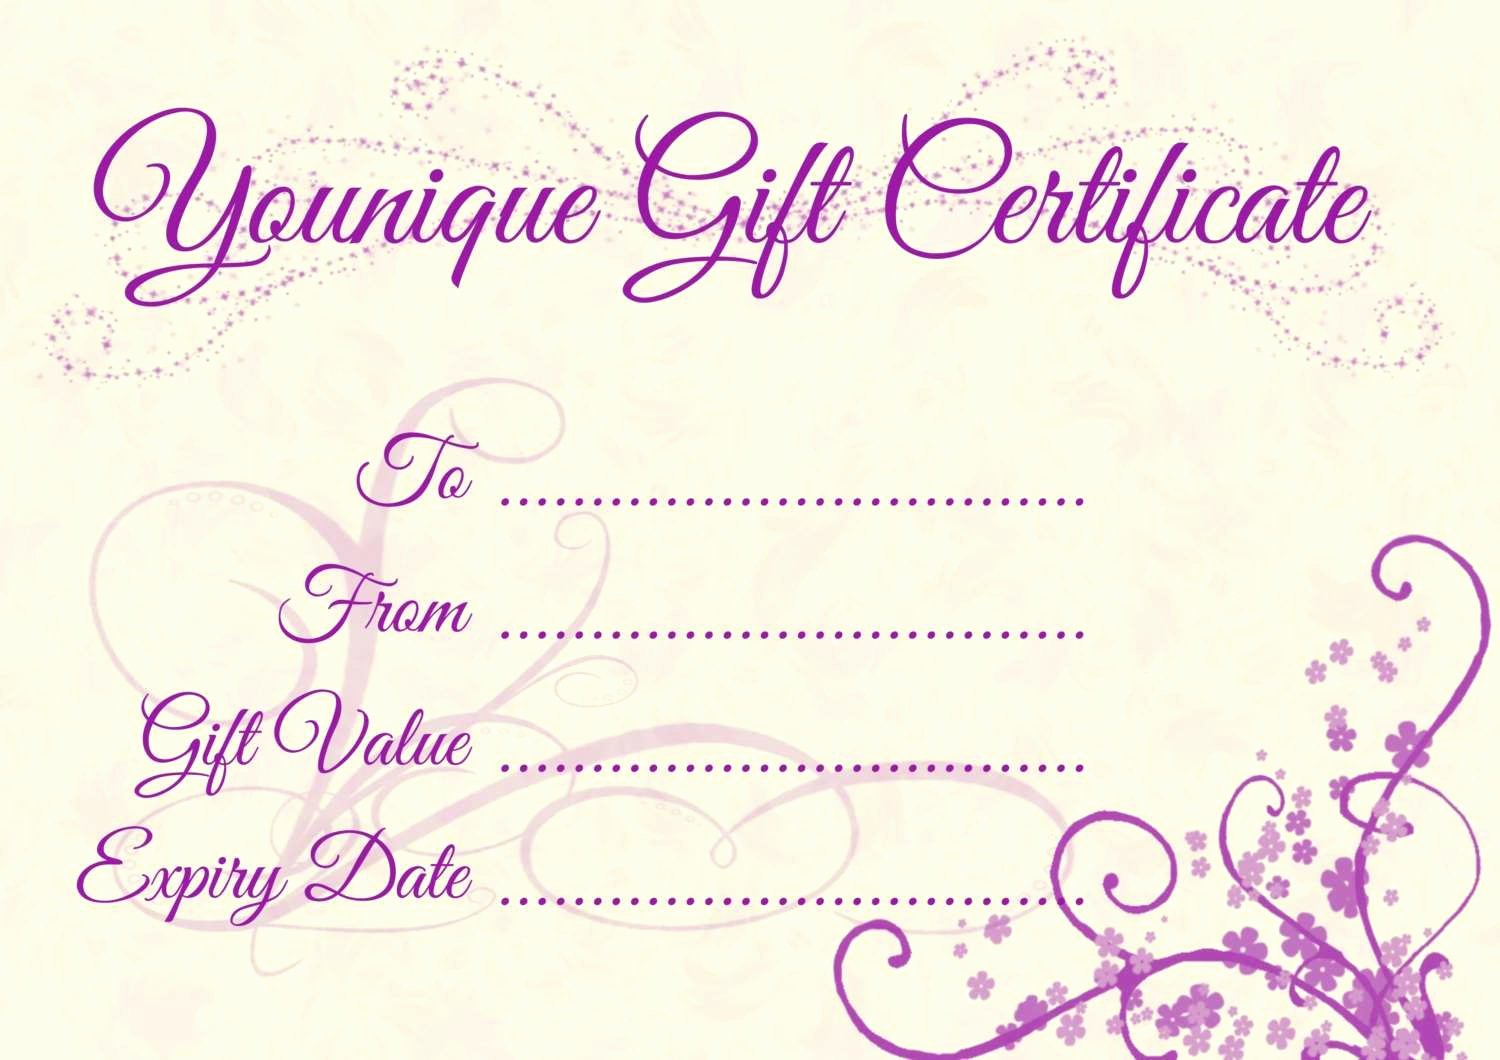 Younique Gift Certificate Template Beautiful Younique Gift Certificate Advanced Younique Gift